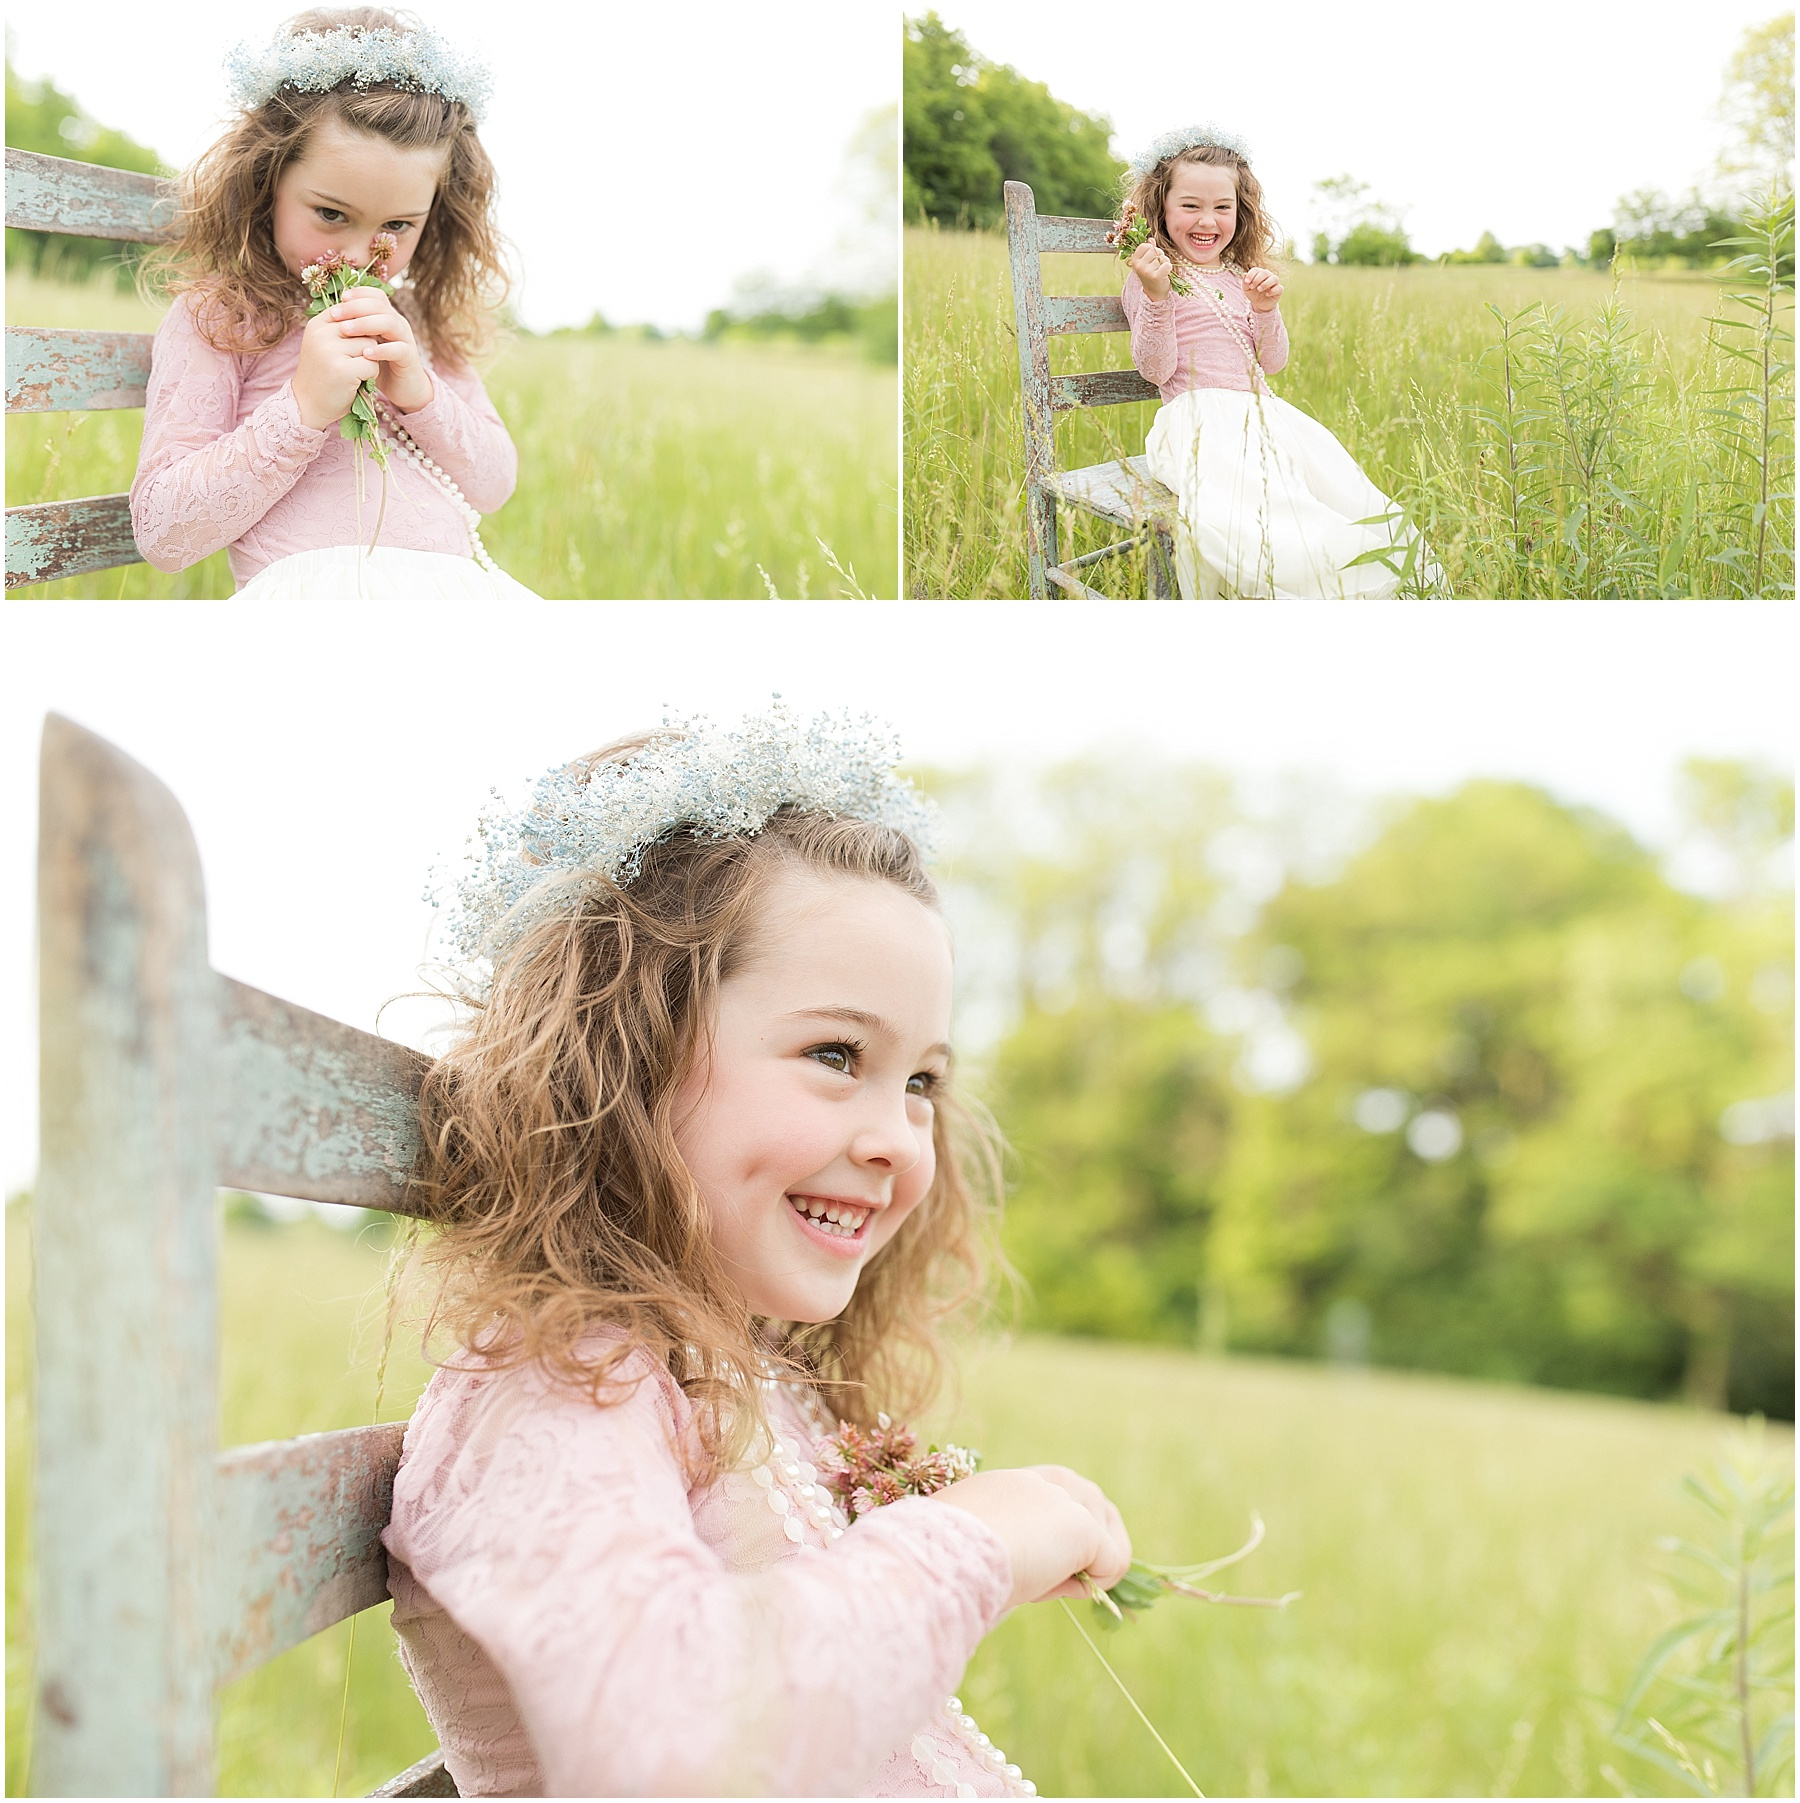 Little girl in a pink dress picking flowers in the field, Indianapolis Children's Photographer